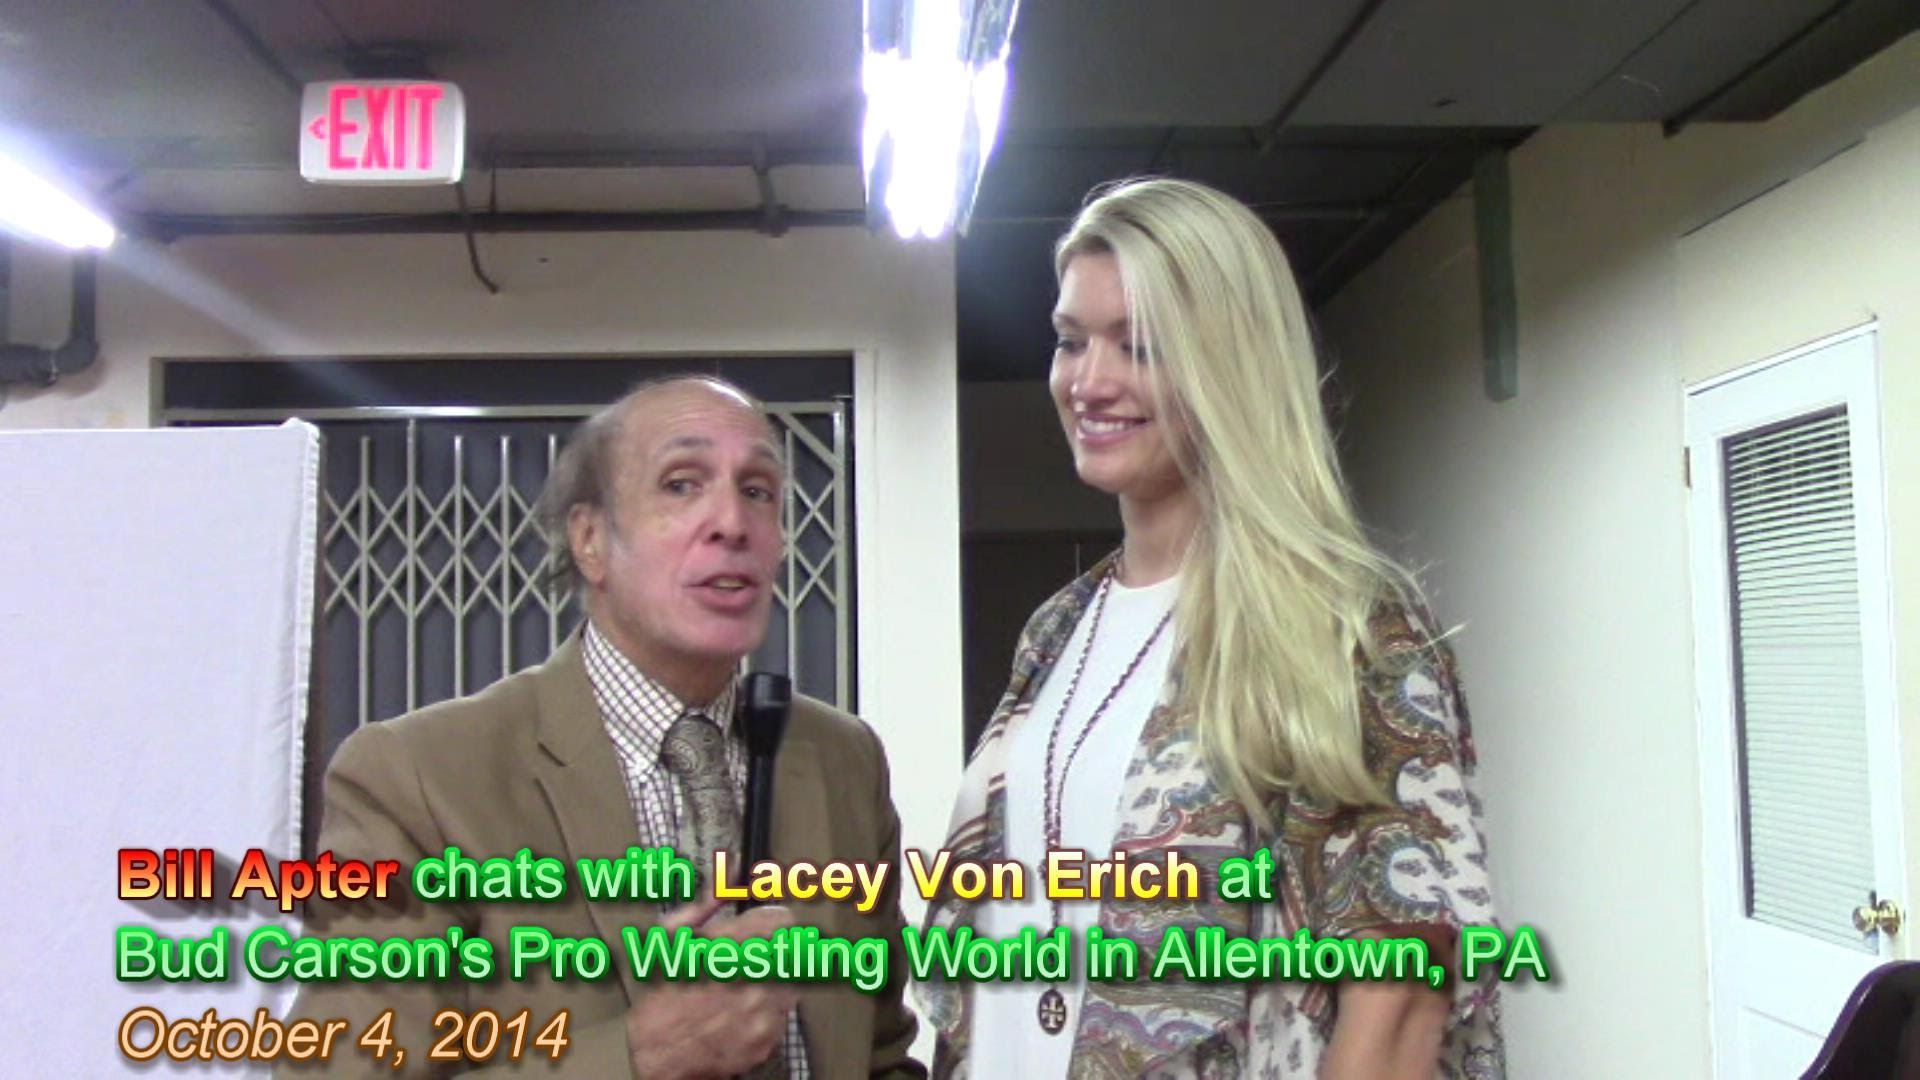 LACEY VON ERICH TALKS OF DAD KERRY, FAMILY, THE CLAW-HOLD ...